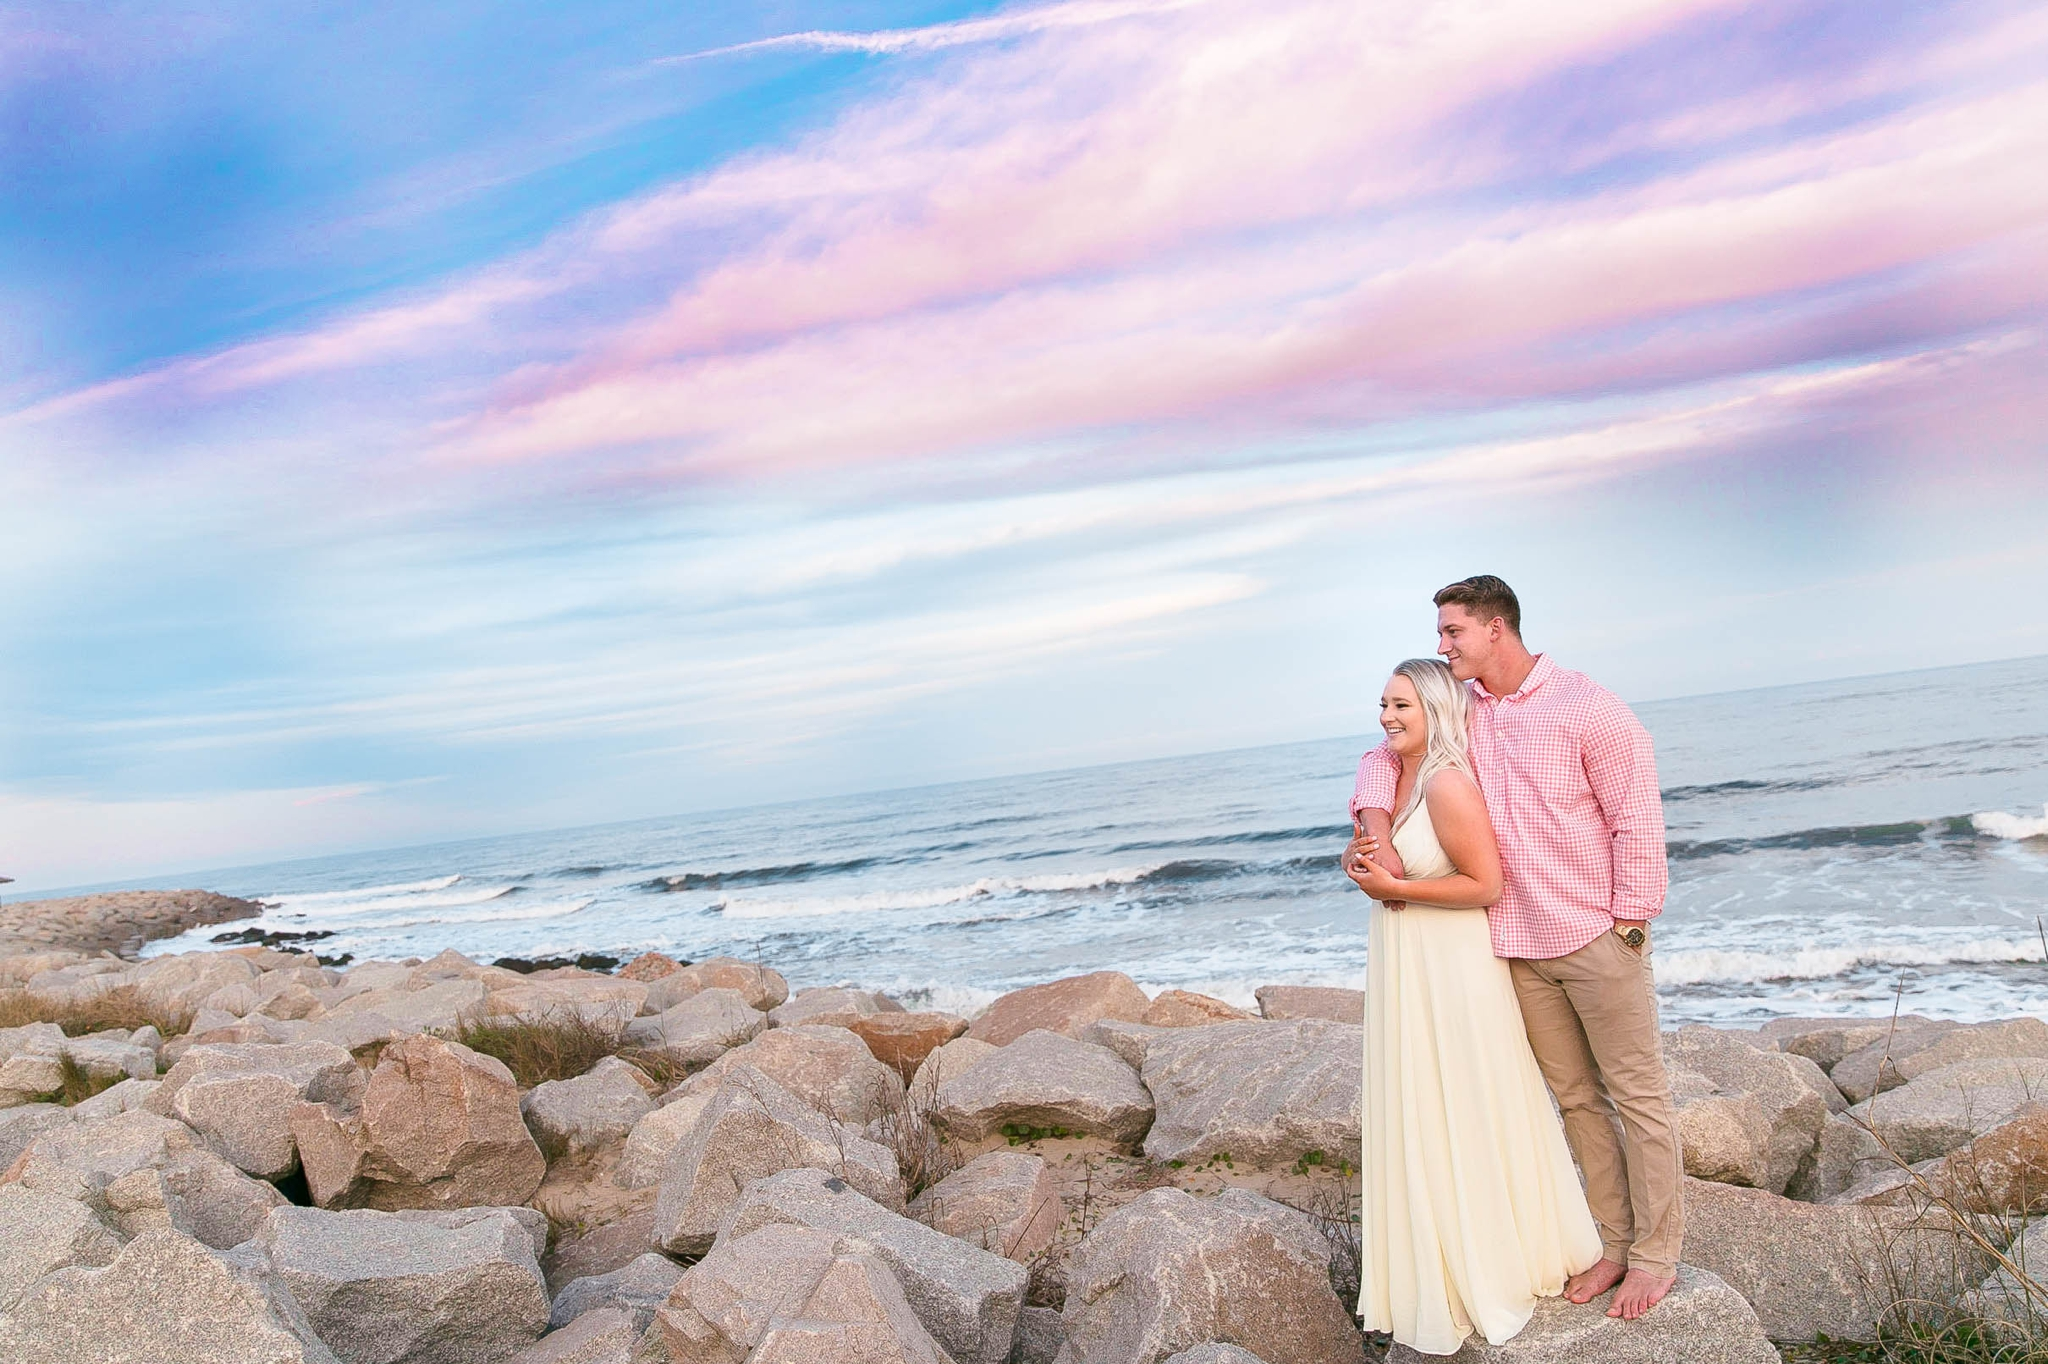 Engagement Photography Session at the beach on top of rocks with a cotton candy sky in the background - couple is kissing - girl is wearing a white flowy maxi dress from lulus - Honolulu Oahu Hawaii Wedding Photographer - Johanna Dye